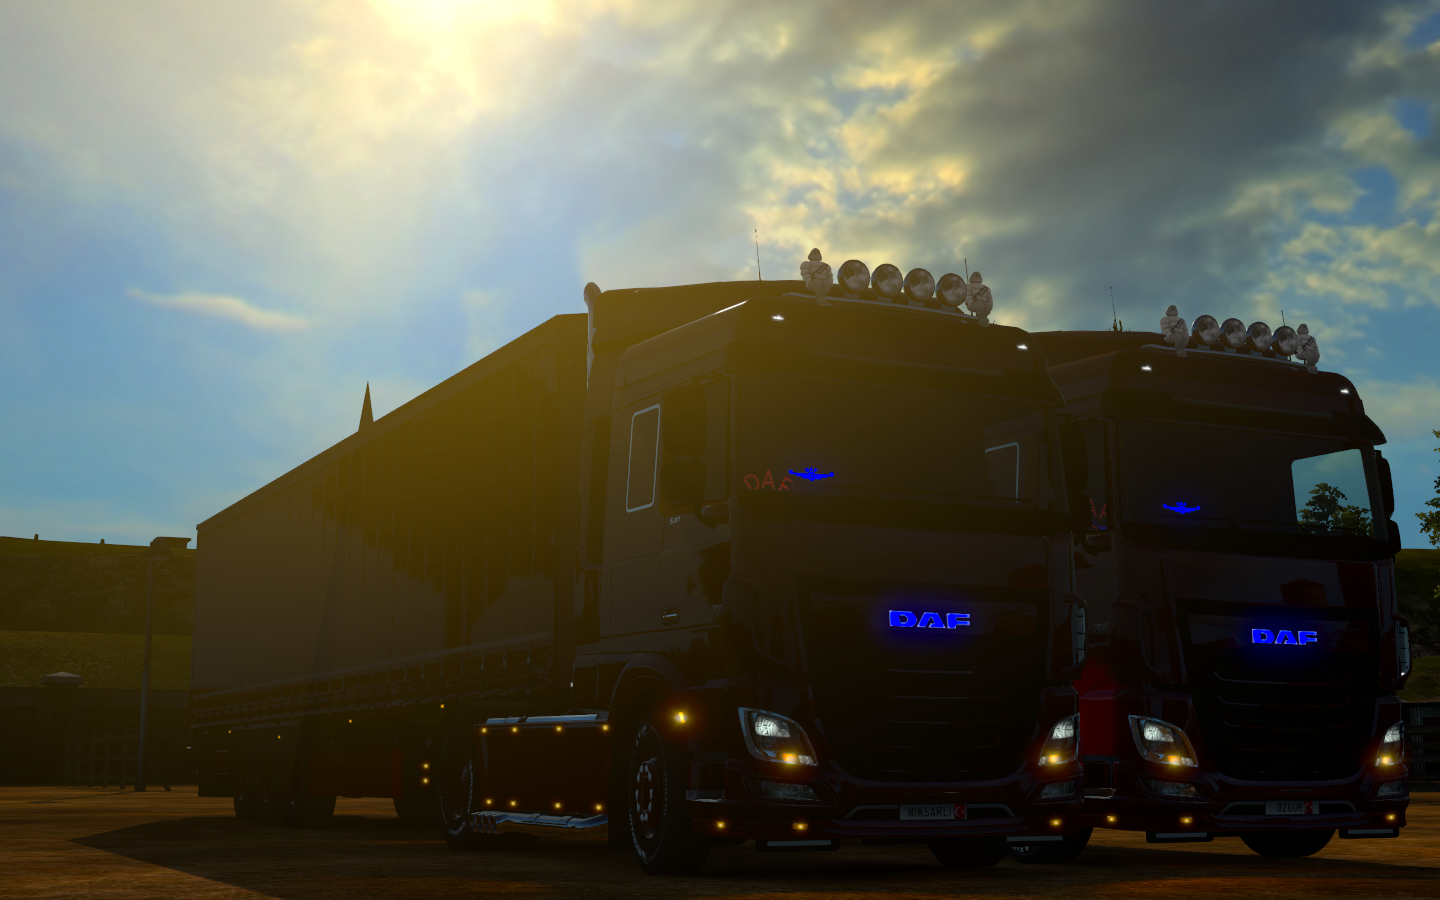 ets2_20190414_211104_00.png